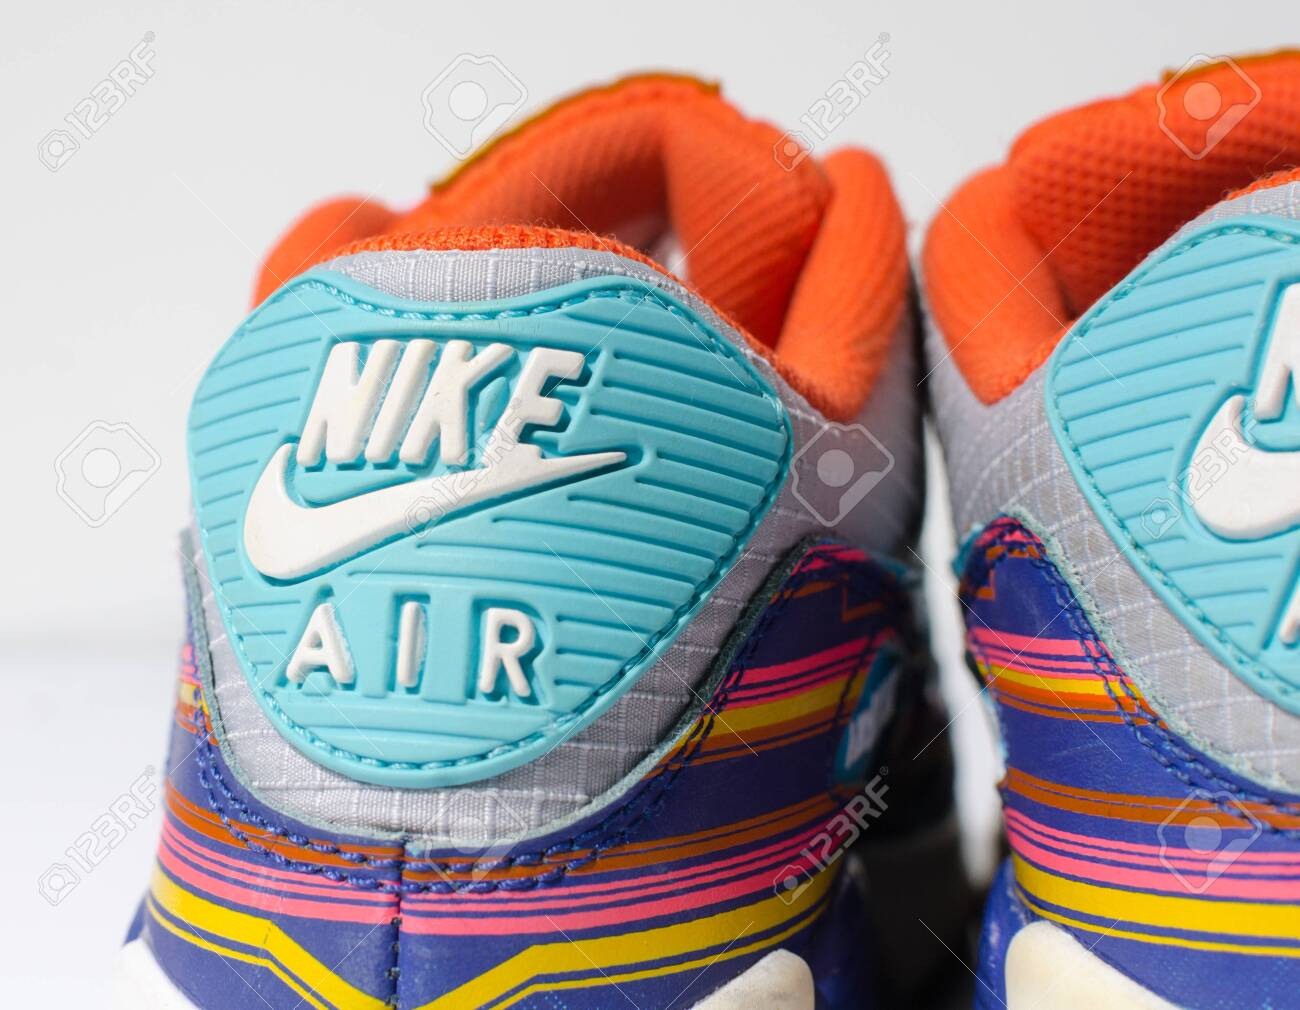 Nike Air Max 90 Grey Clearwater